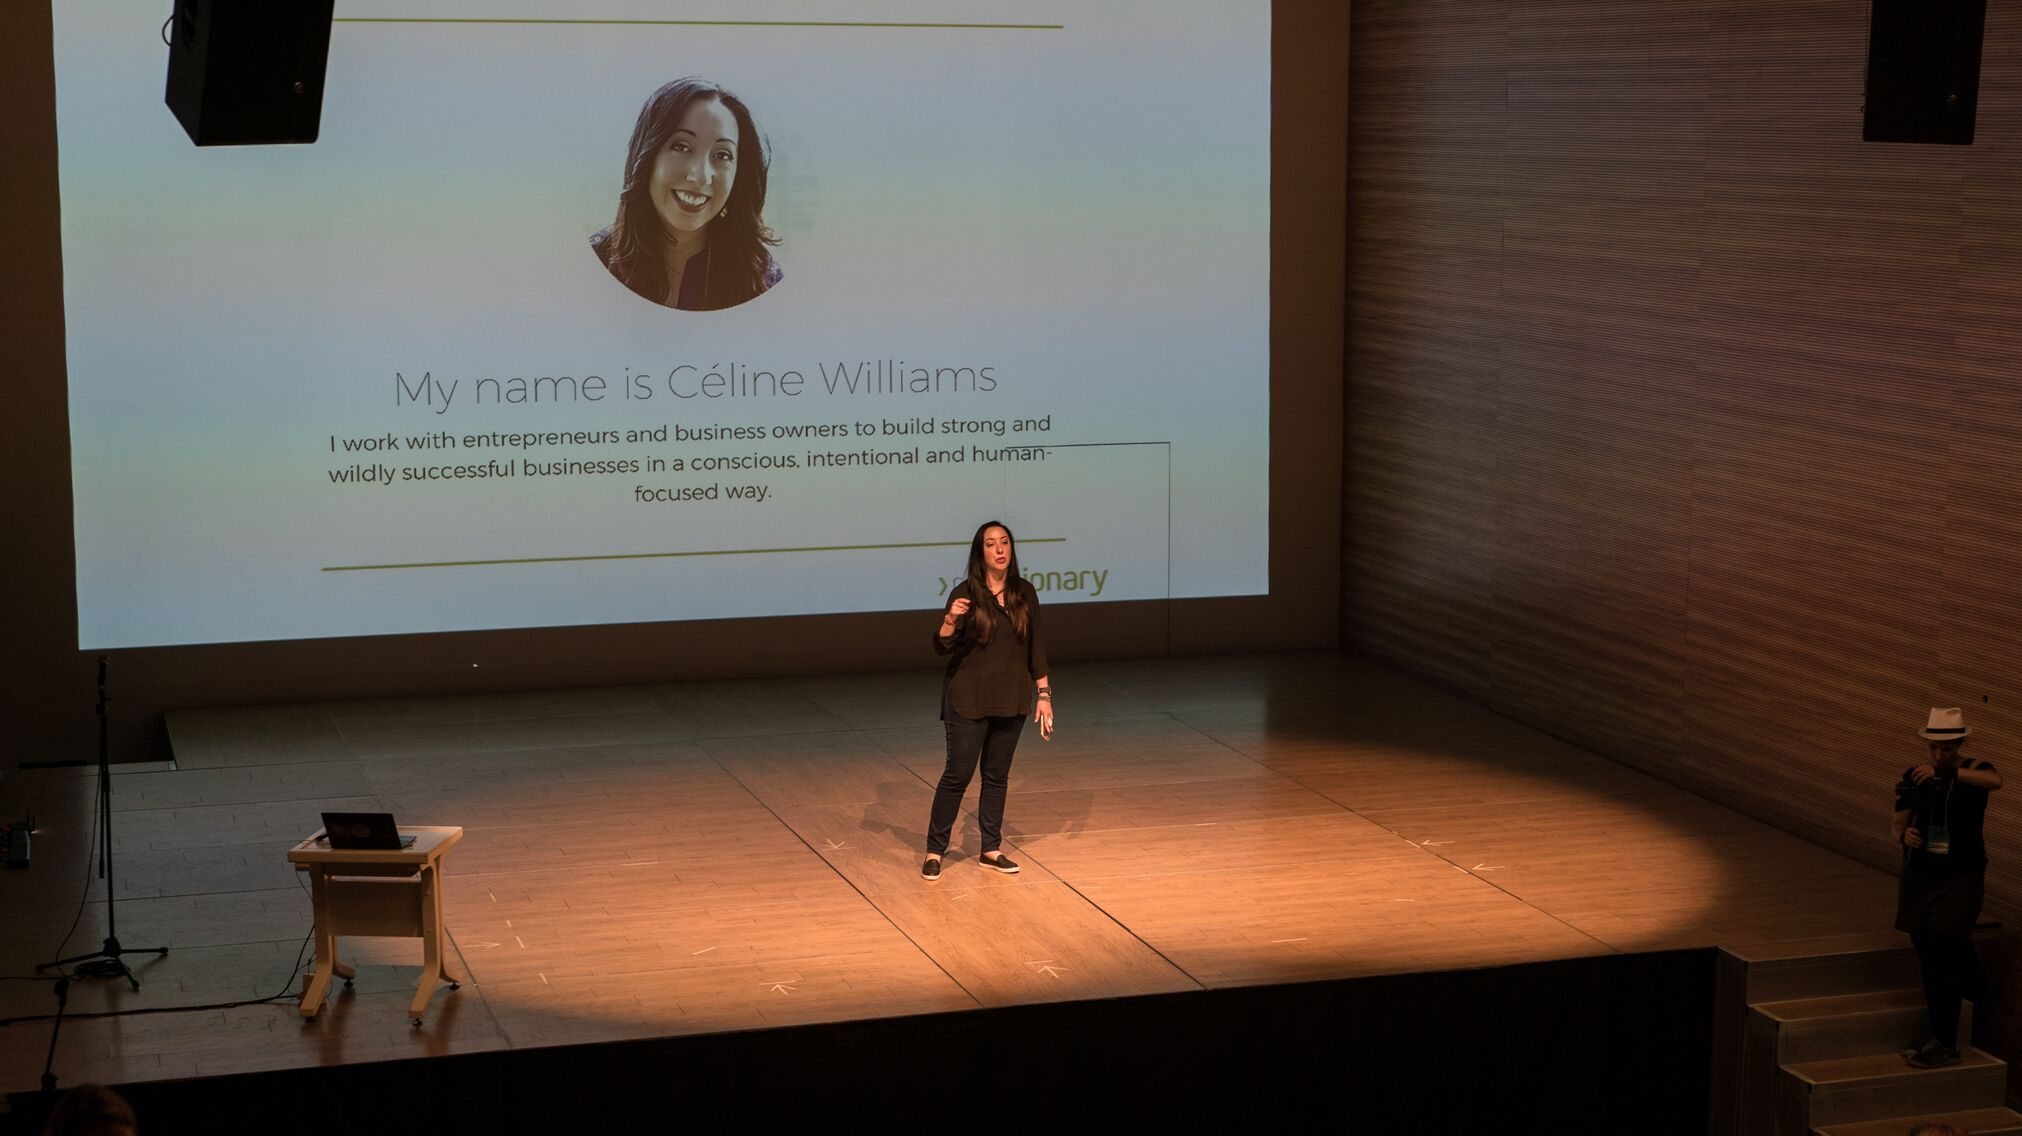 Céline Williams speaking at Ryerson University